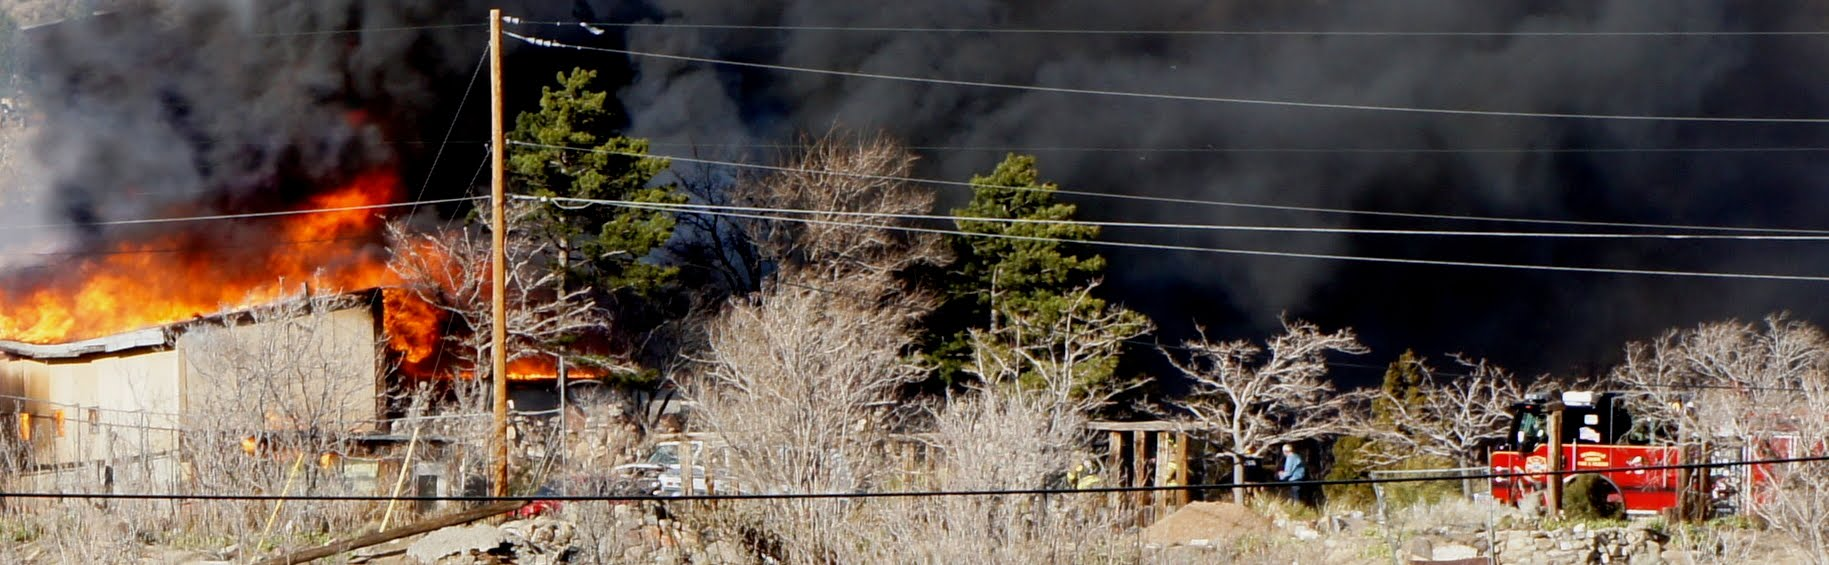 House fire at Carnuel, New Mexico on Wednesday, March 7, 2012 at ~ 16:30 MST